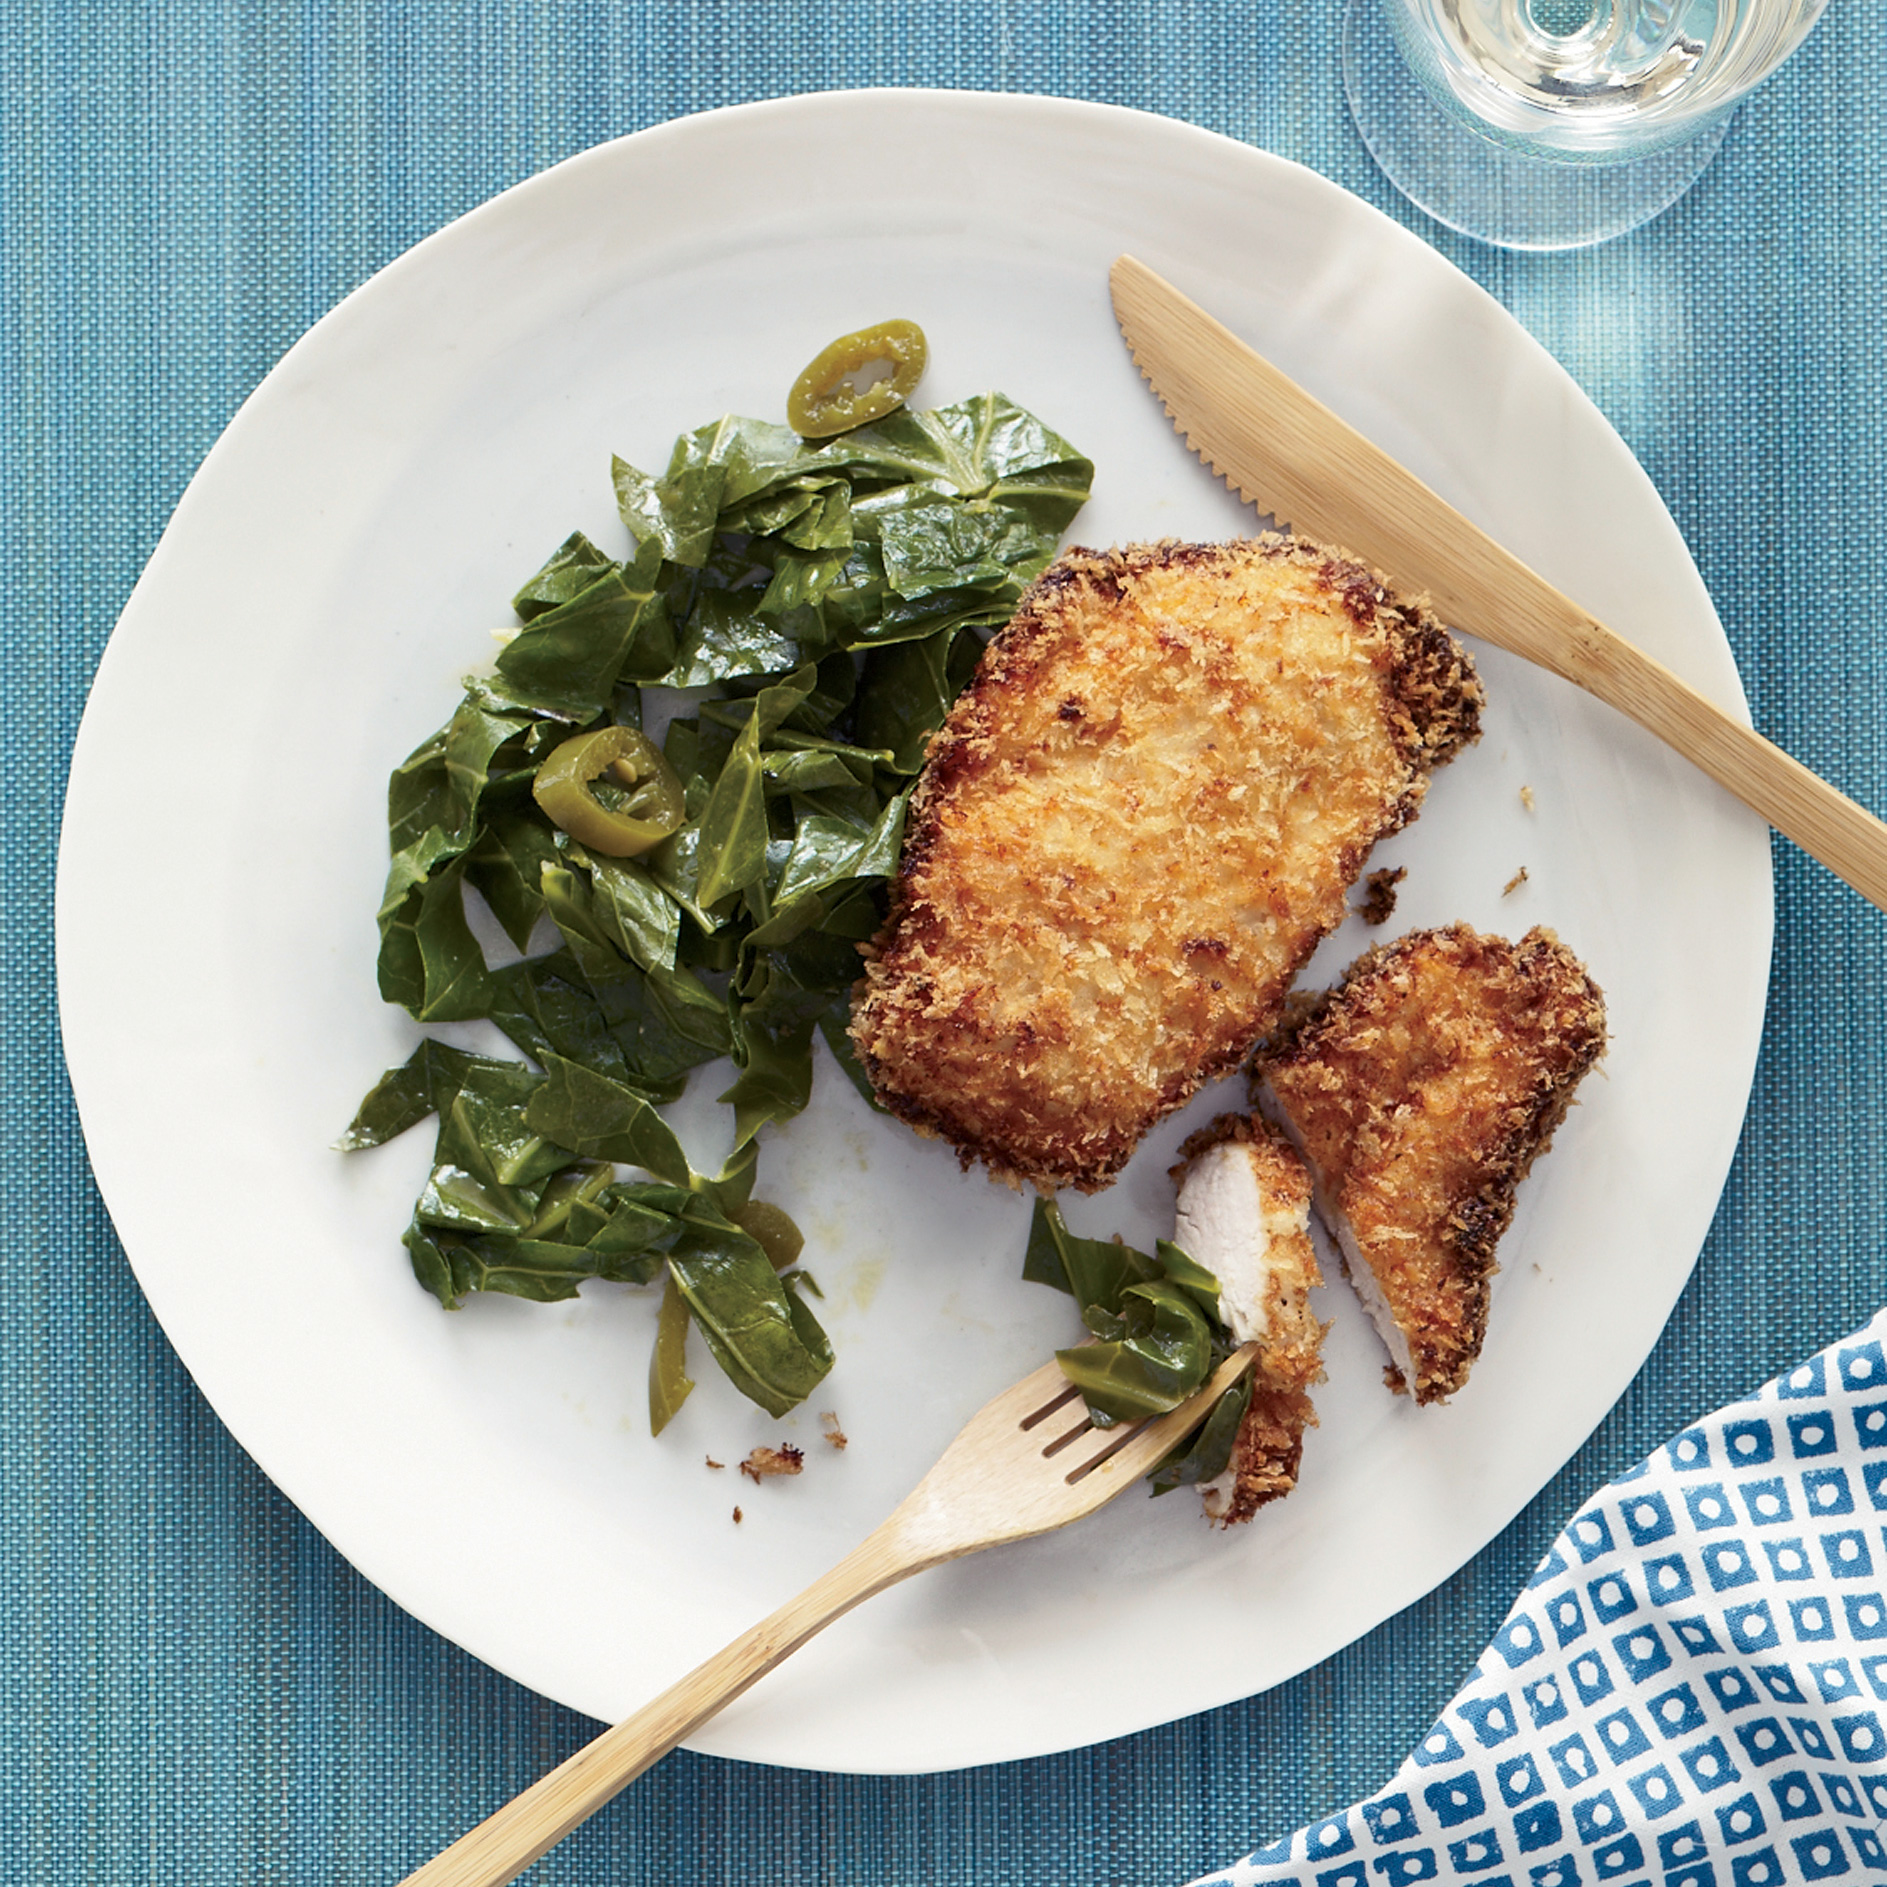 Coconut Chicken with Pickled Pepper Collards from Marcus Samuelsson